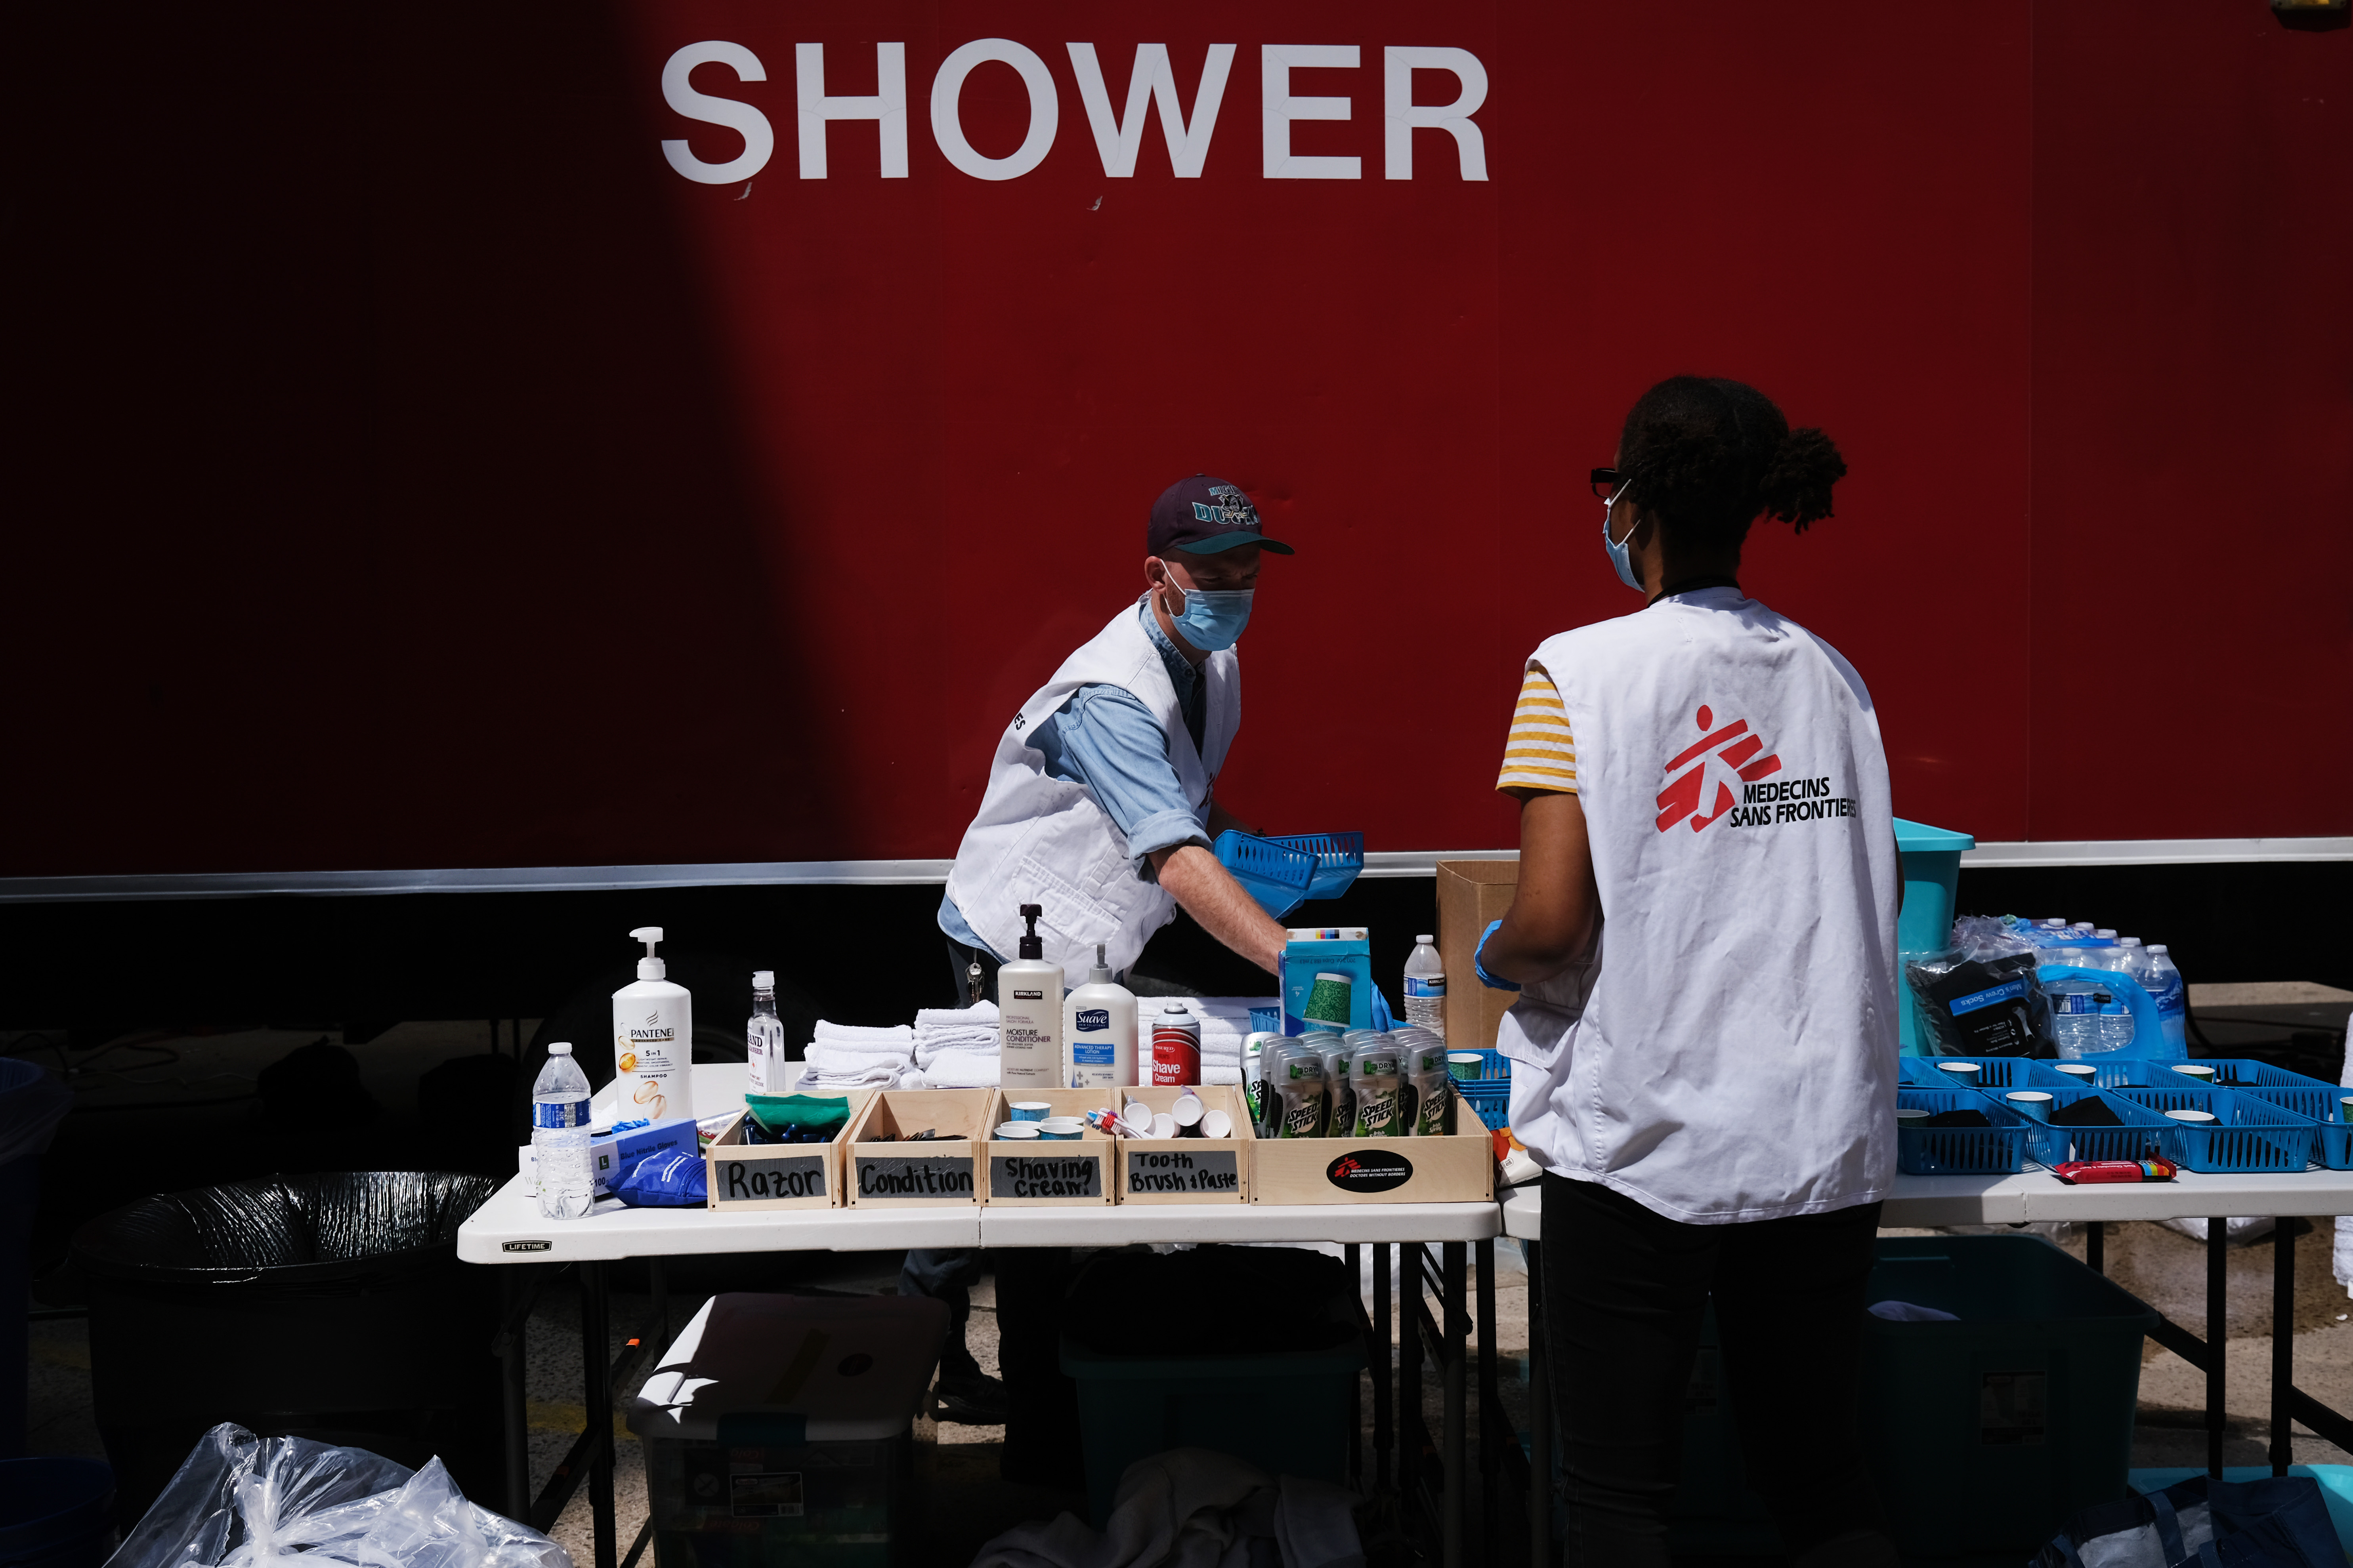 Employees prepare free toiletries at a Doctors Without Borders/Médecins Sans Frontières (MSF) temporary shower trailer in Manhattan for the homeless and other vulnerable communities on May 07, 2020 in New York City. (Photo by Spencer Platt/Getty Images)